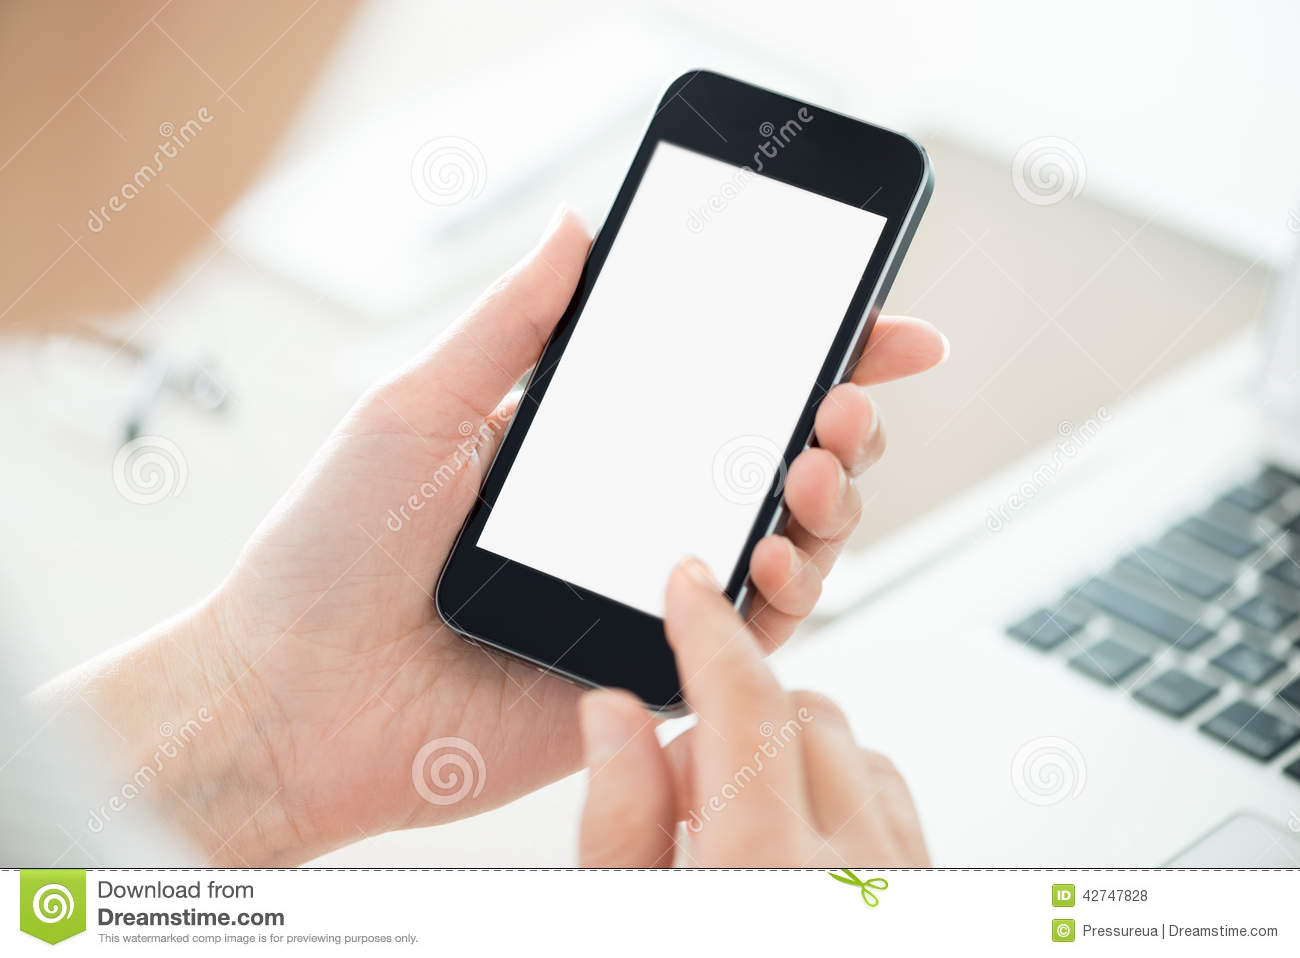 Person holding smartphone with blank screen